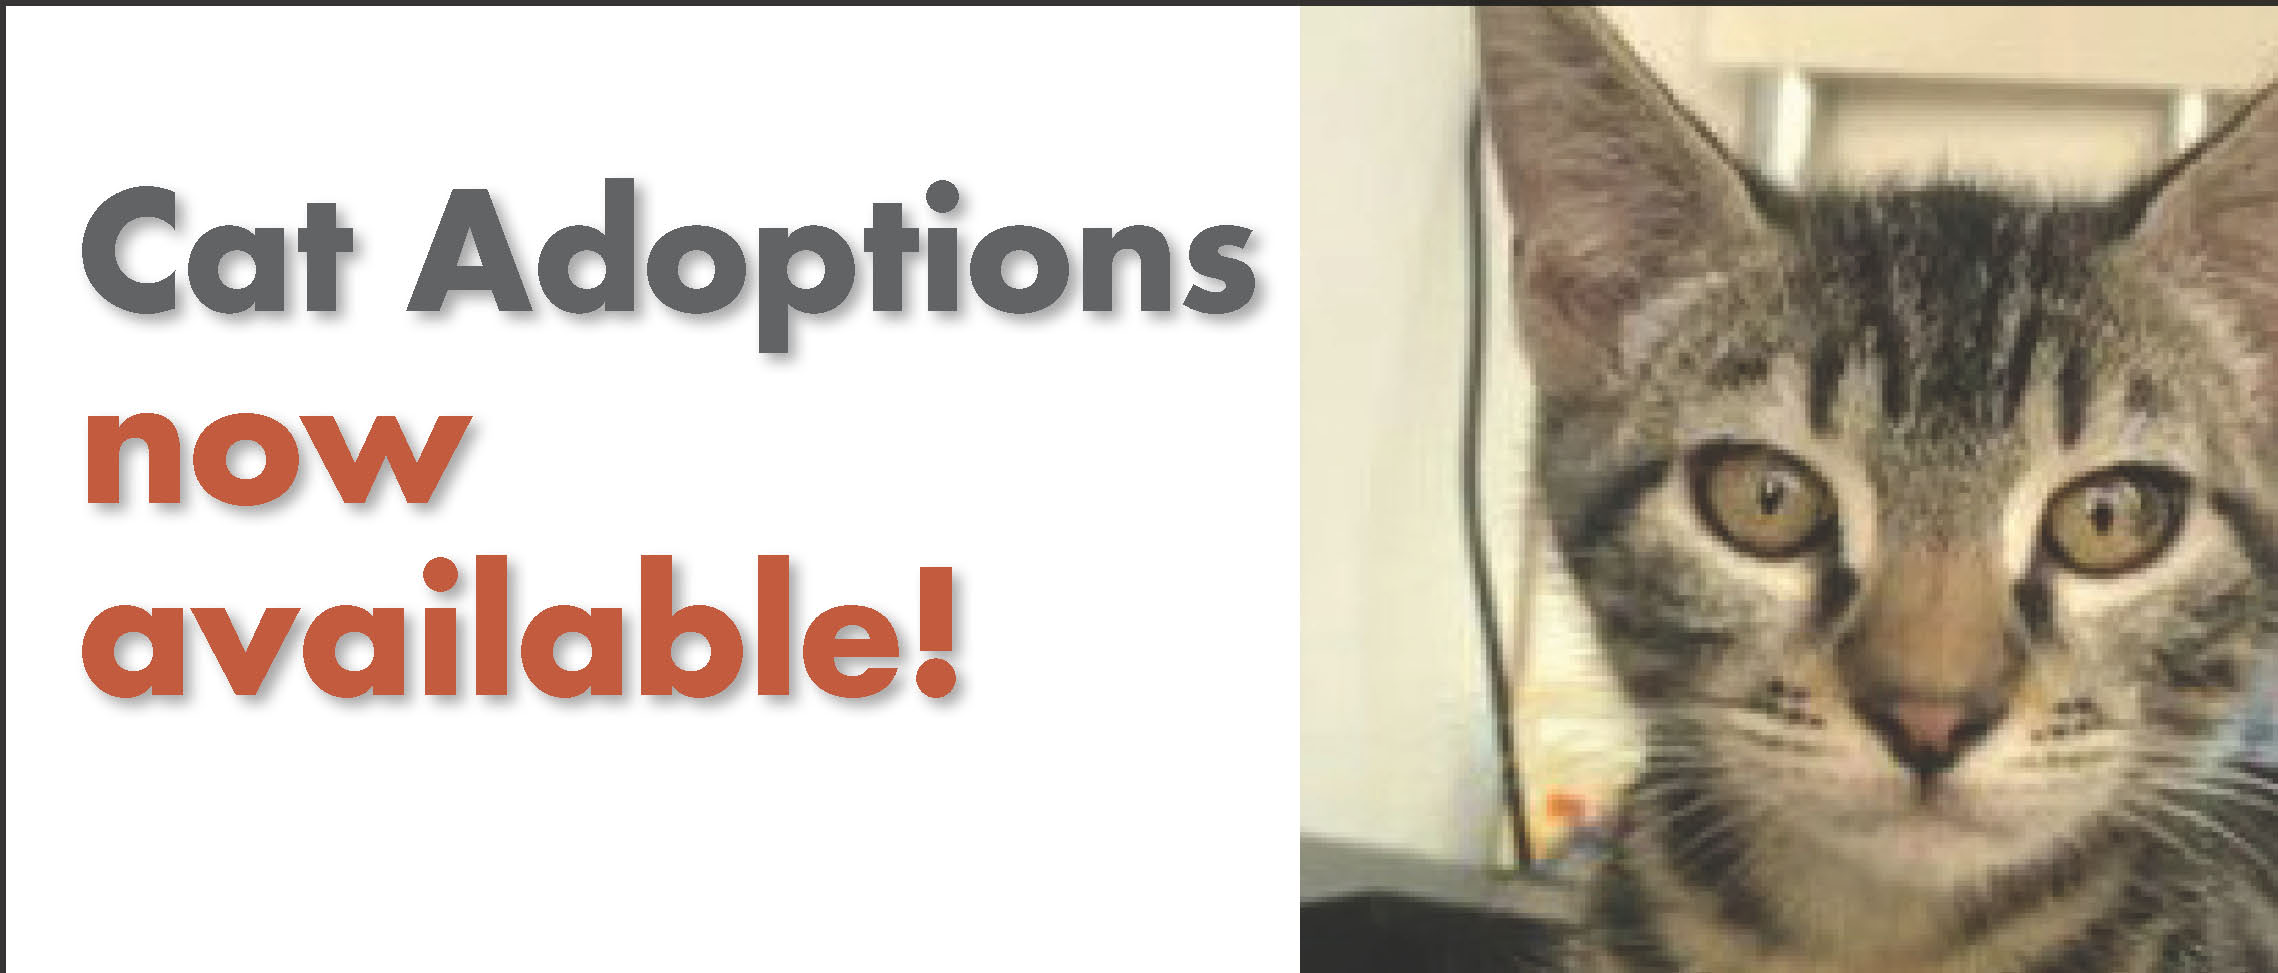 Cat adoptions are back!